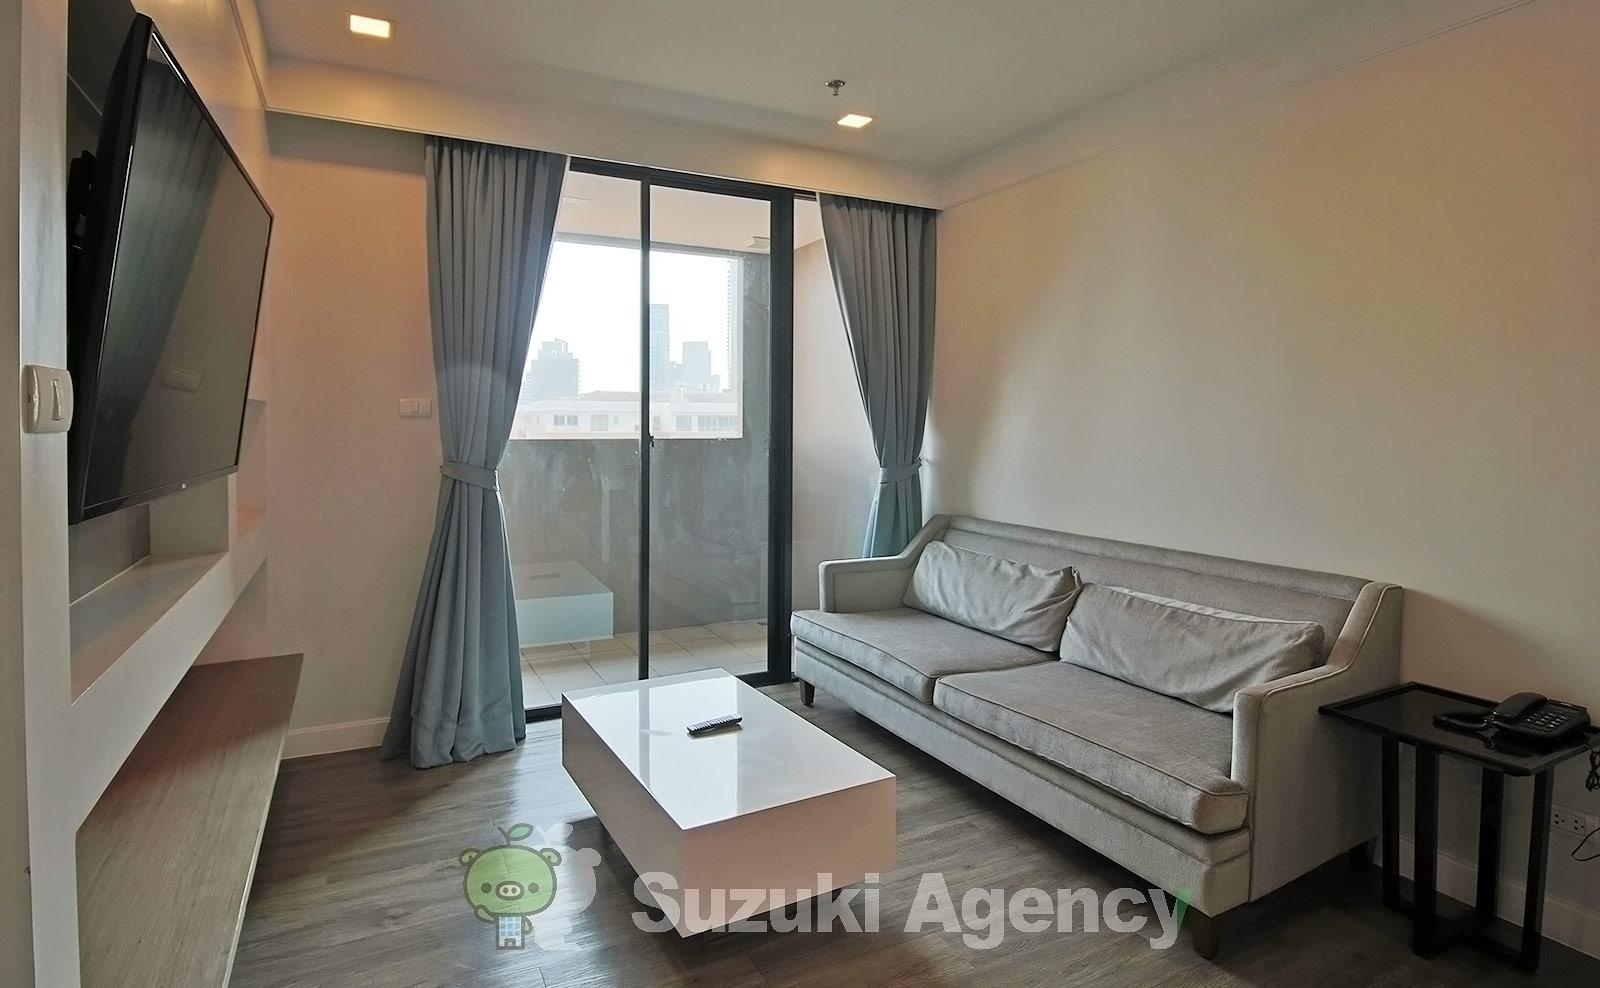 METROPOLE Residence (旧 Parc 39):1Bed Room Photos No.2